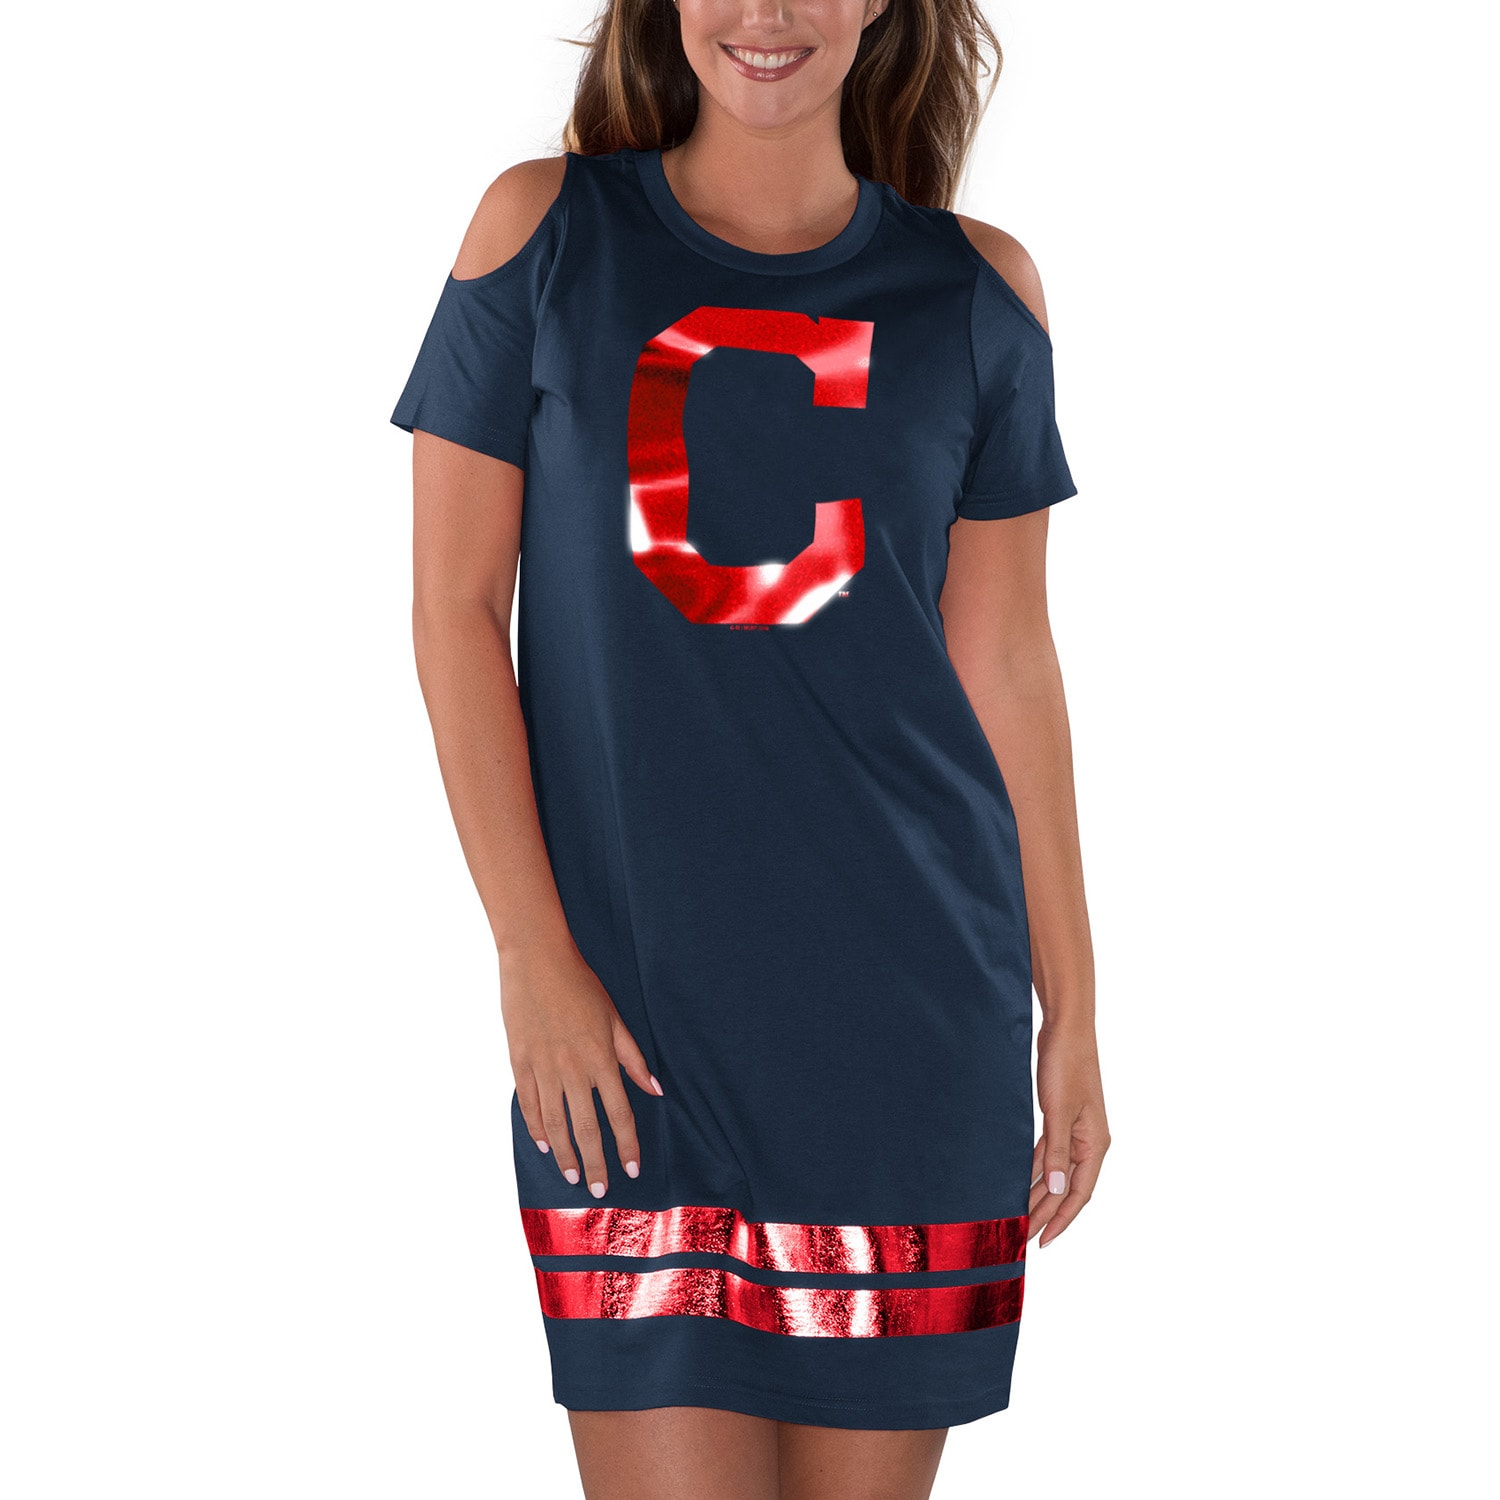 Cleveland Indians G-III 4Her by Carl Banks Women's Final's Tri-Blend Dress - Navy